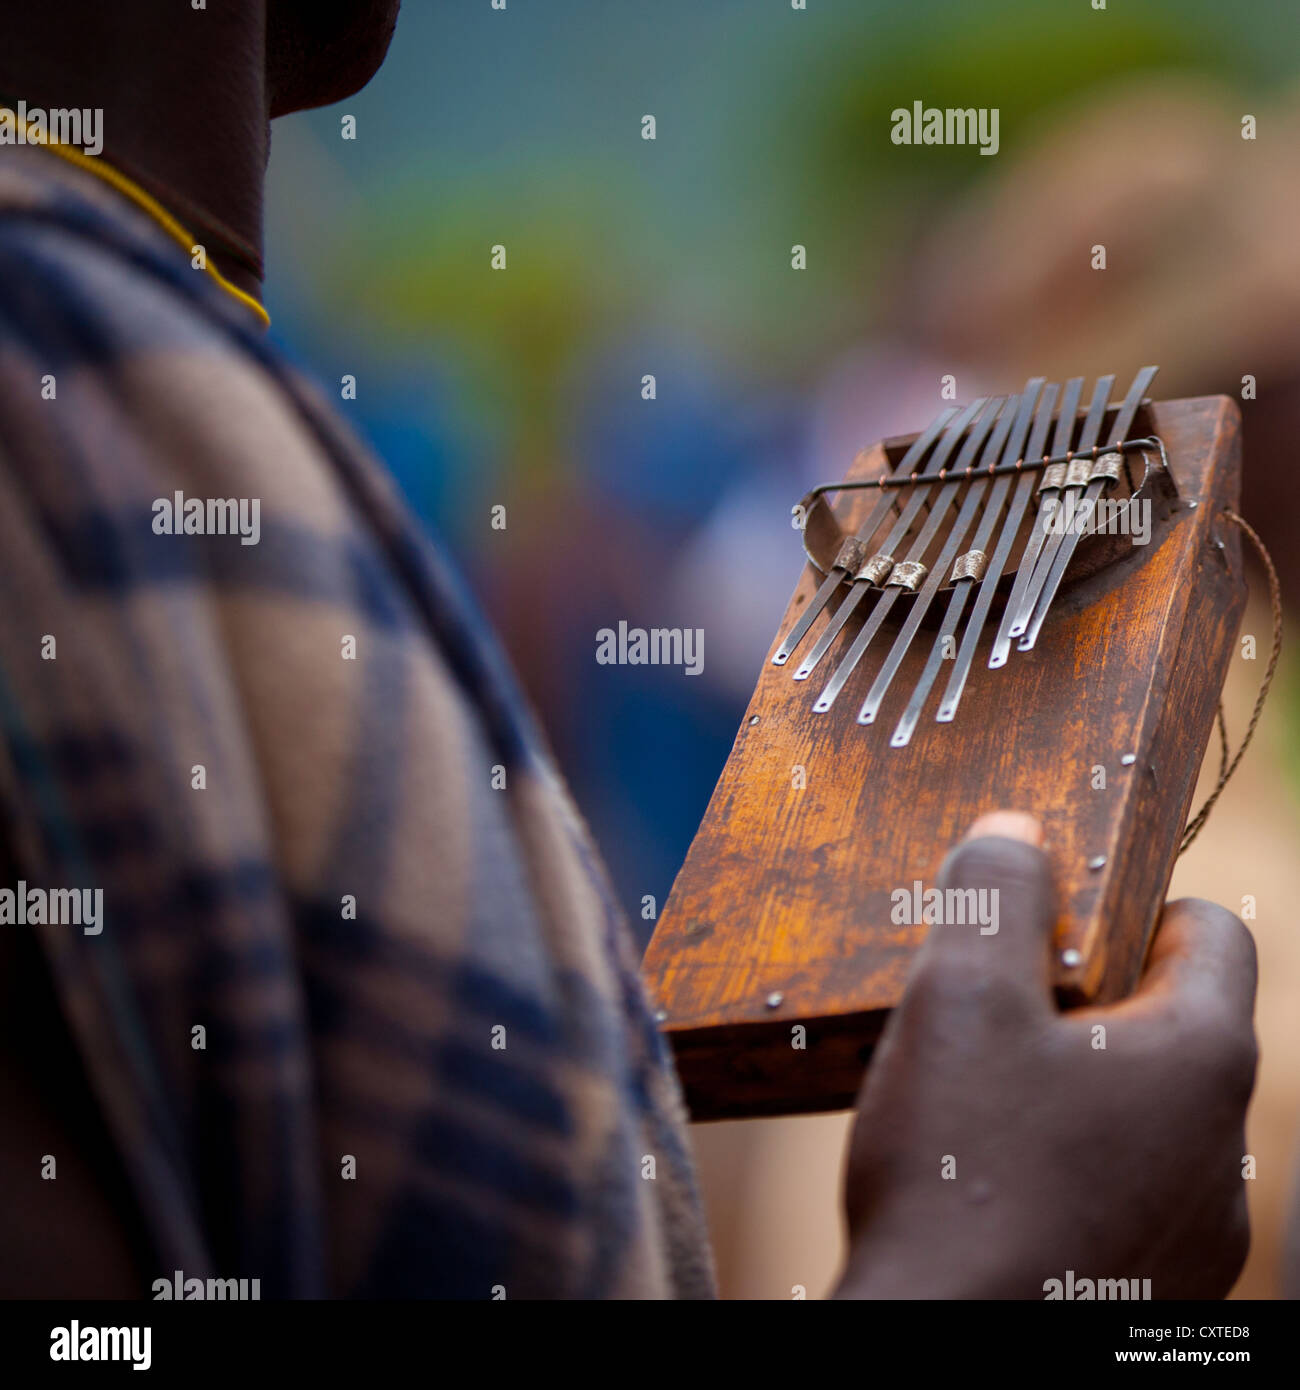 Detail Of A Suri Tribe Person Holding A Kalimba At A Ceremony Organized By The Government, Kibish, Omo Valley, Ethiopia Stock Photo